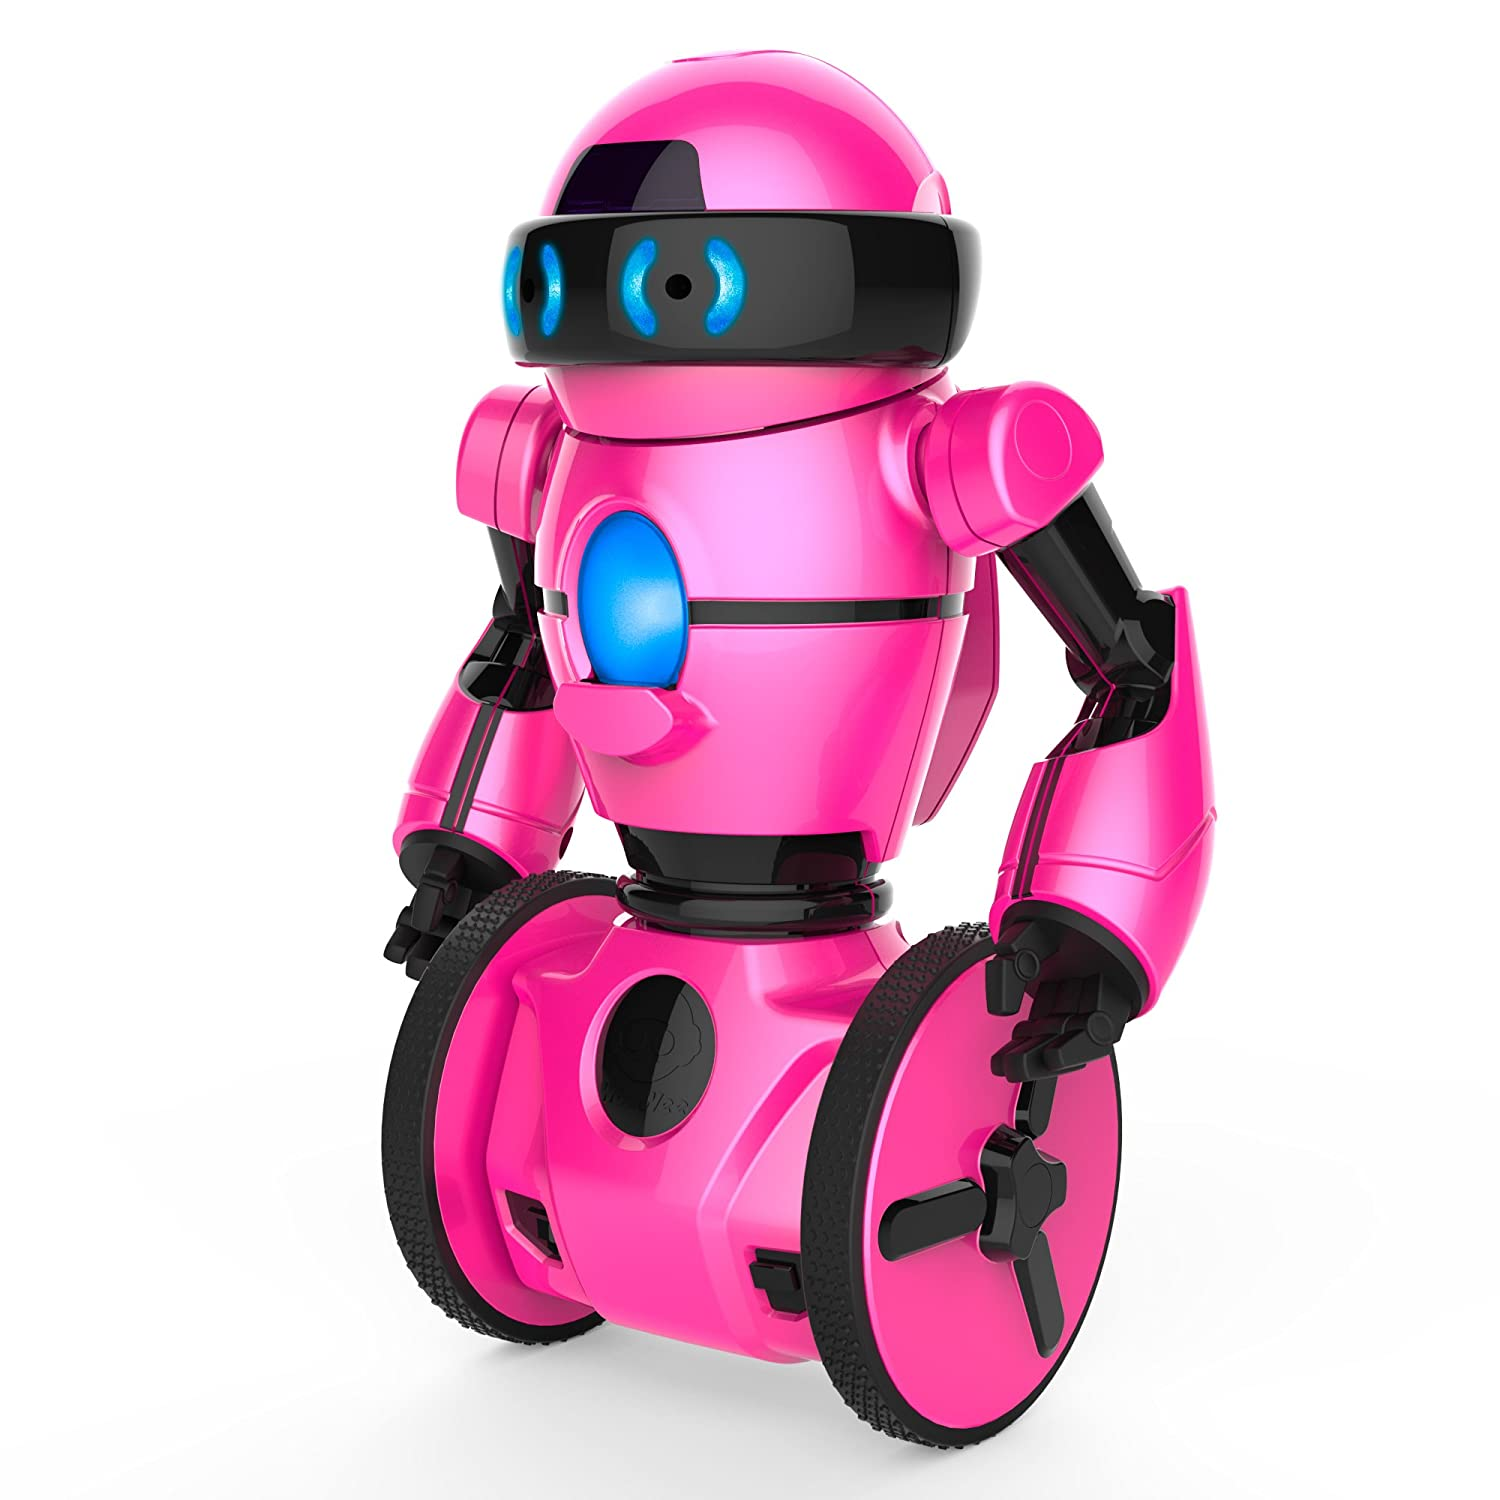 Amazon WowWee MiP the Toy Robot DELUXE Includes Recharge